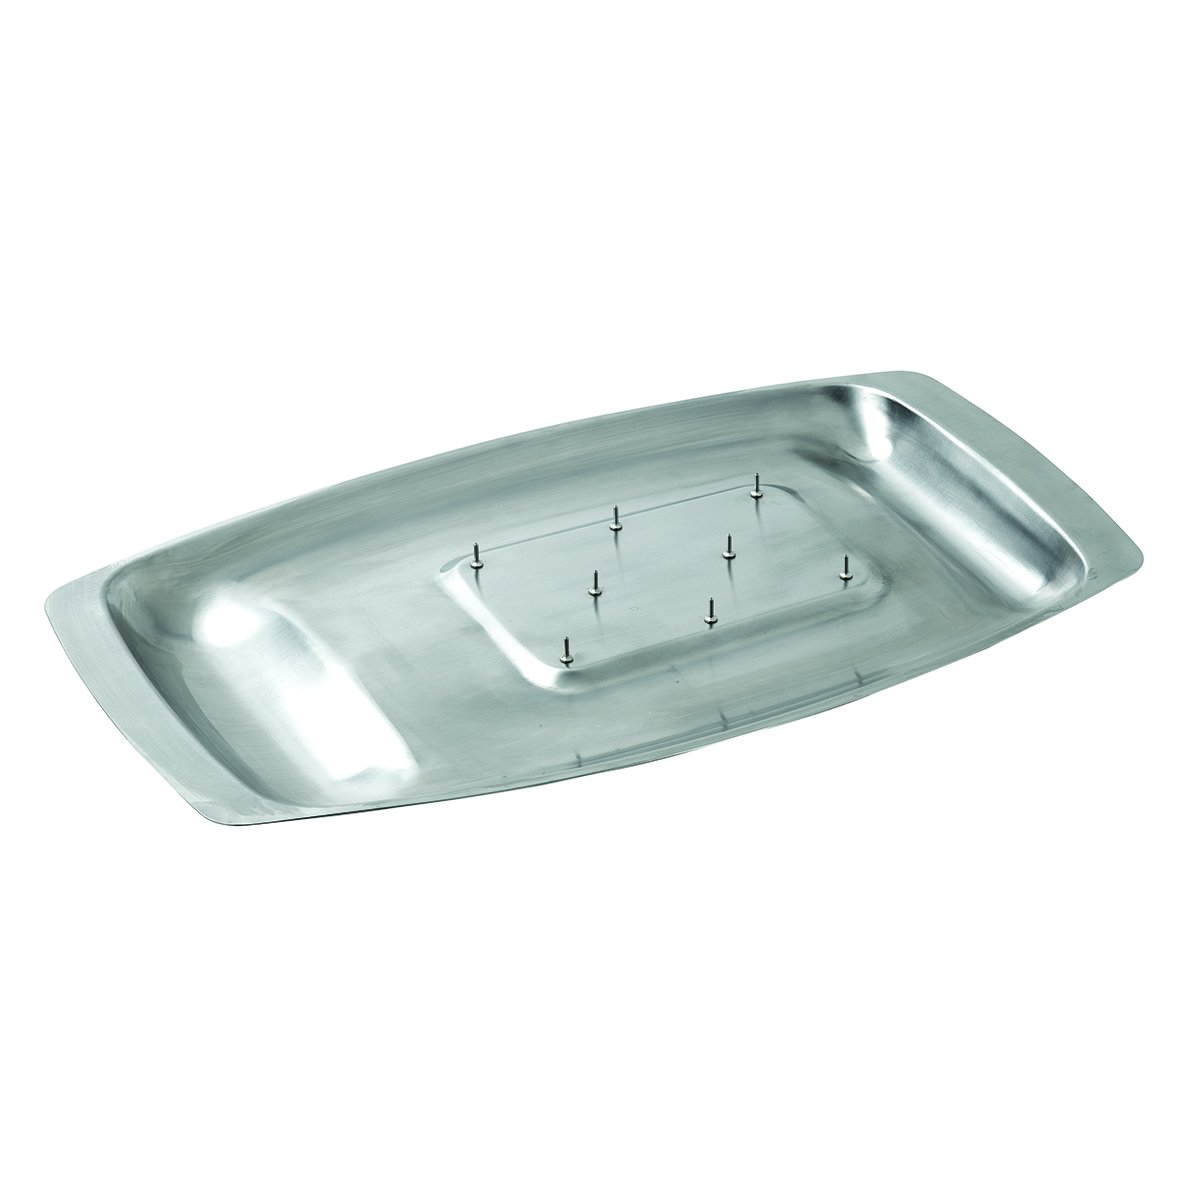 Dexam Chichester carving dish with spikes, s/s 45 x 27cm